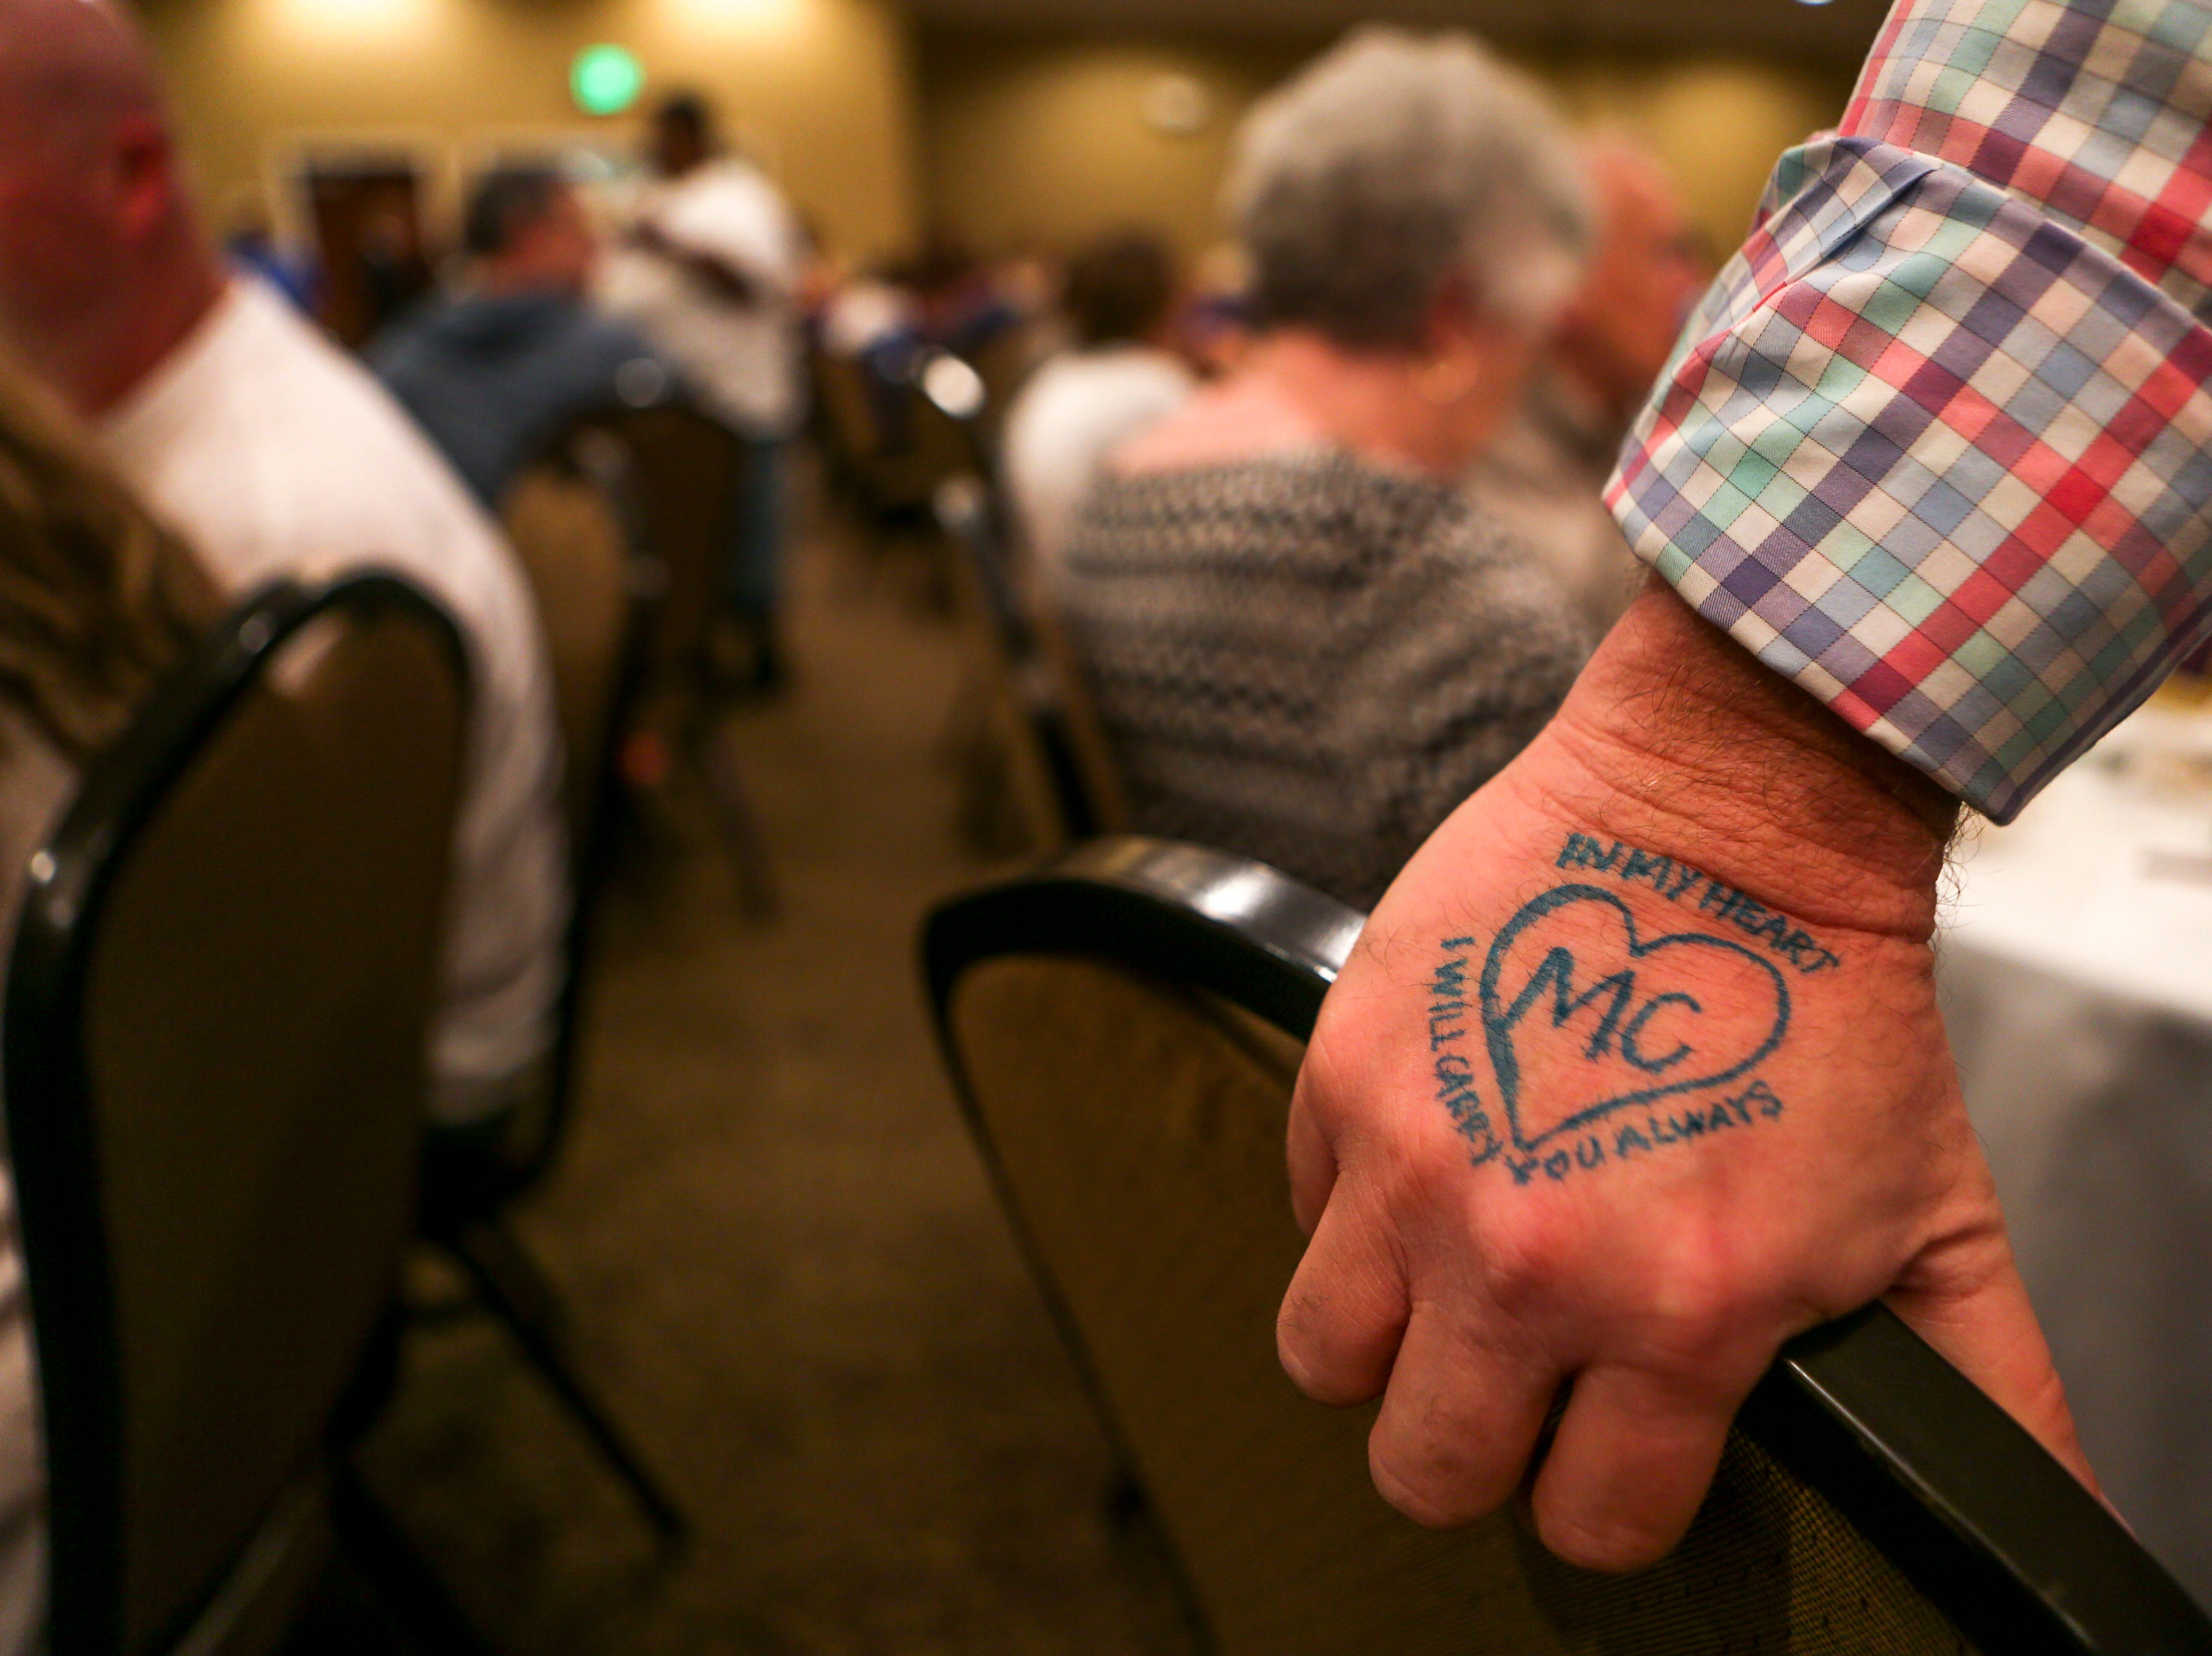 Steven Lee White, with a drawing to memorialize his daughter on his hand, braces himself on a chair during the annual Remember Me Walk hosted at Union University in Jackson, Tenn., on Monday, Oct. 1, 2018.